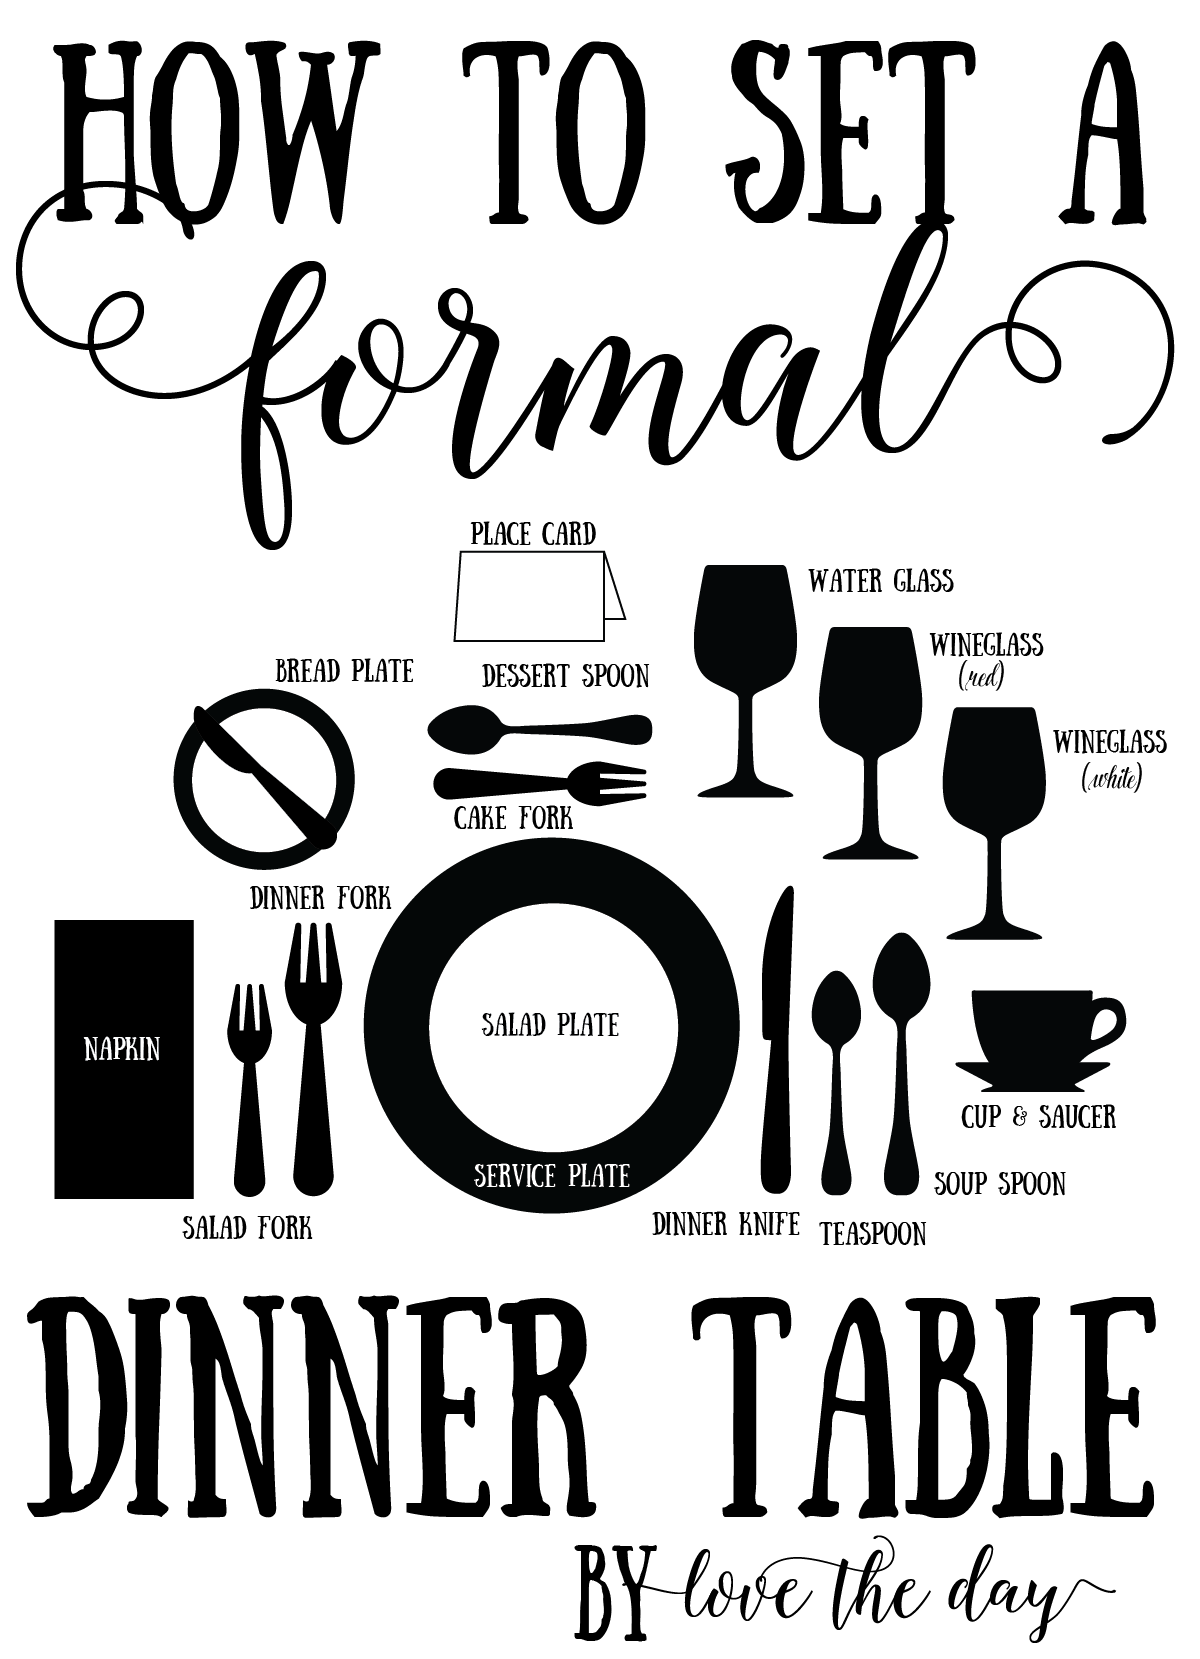 Do You Know The Proper Place Setting For Both An